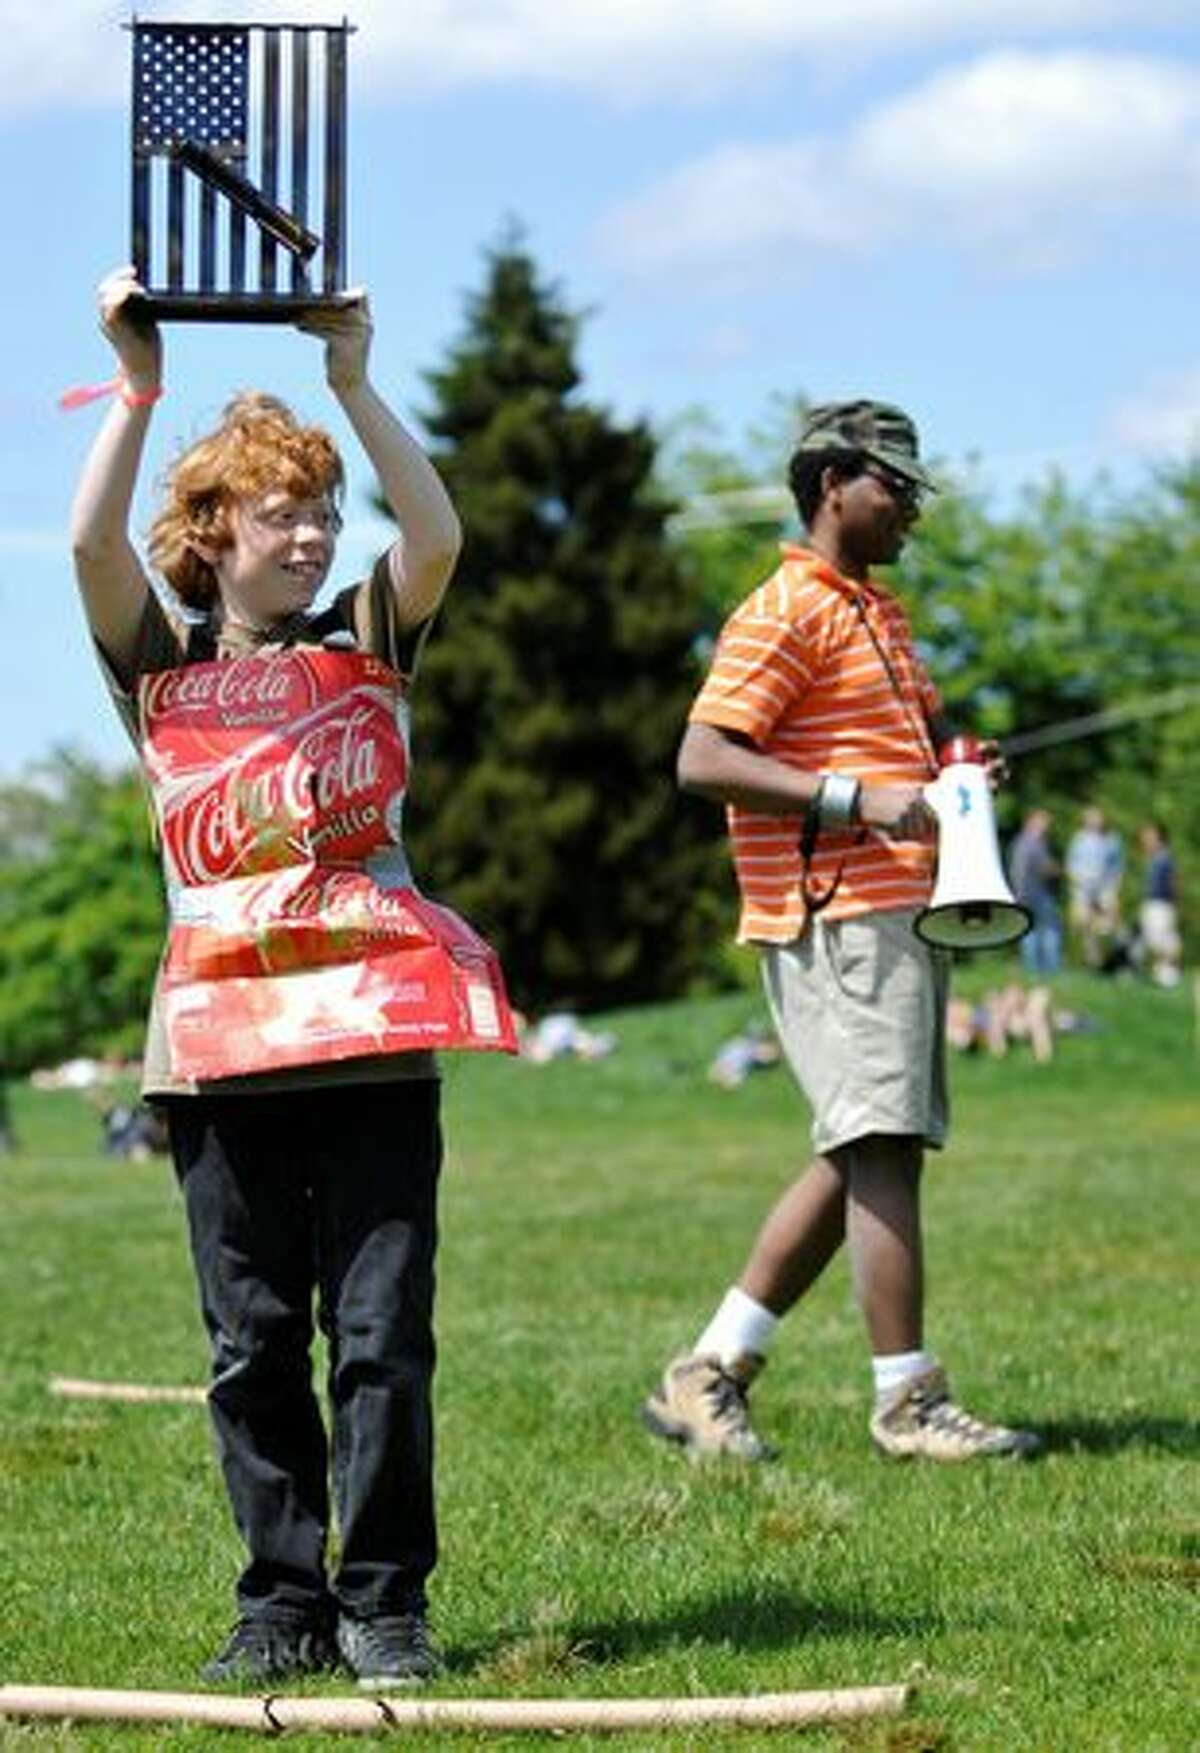 Sam David holds up his trophy for winning the Old Glory Cardboard Tube Fight competition.